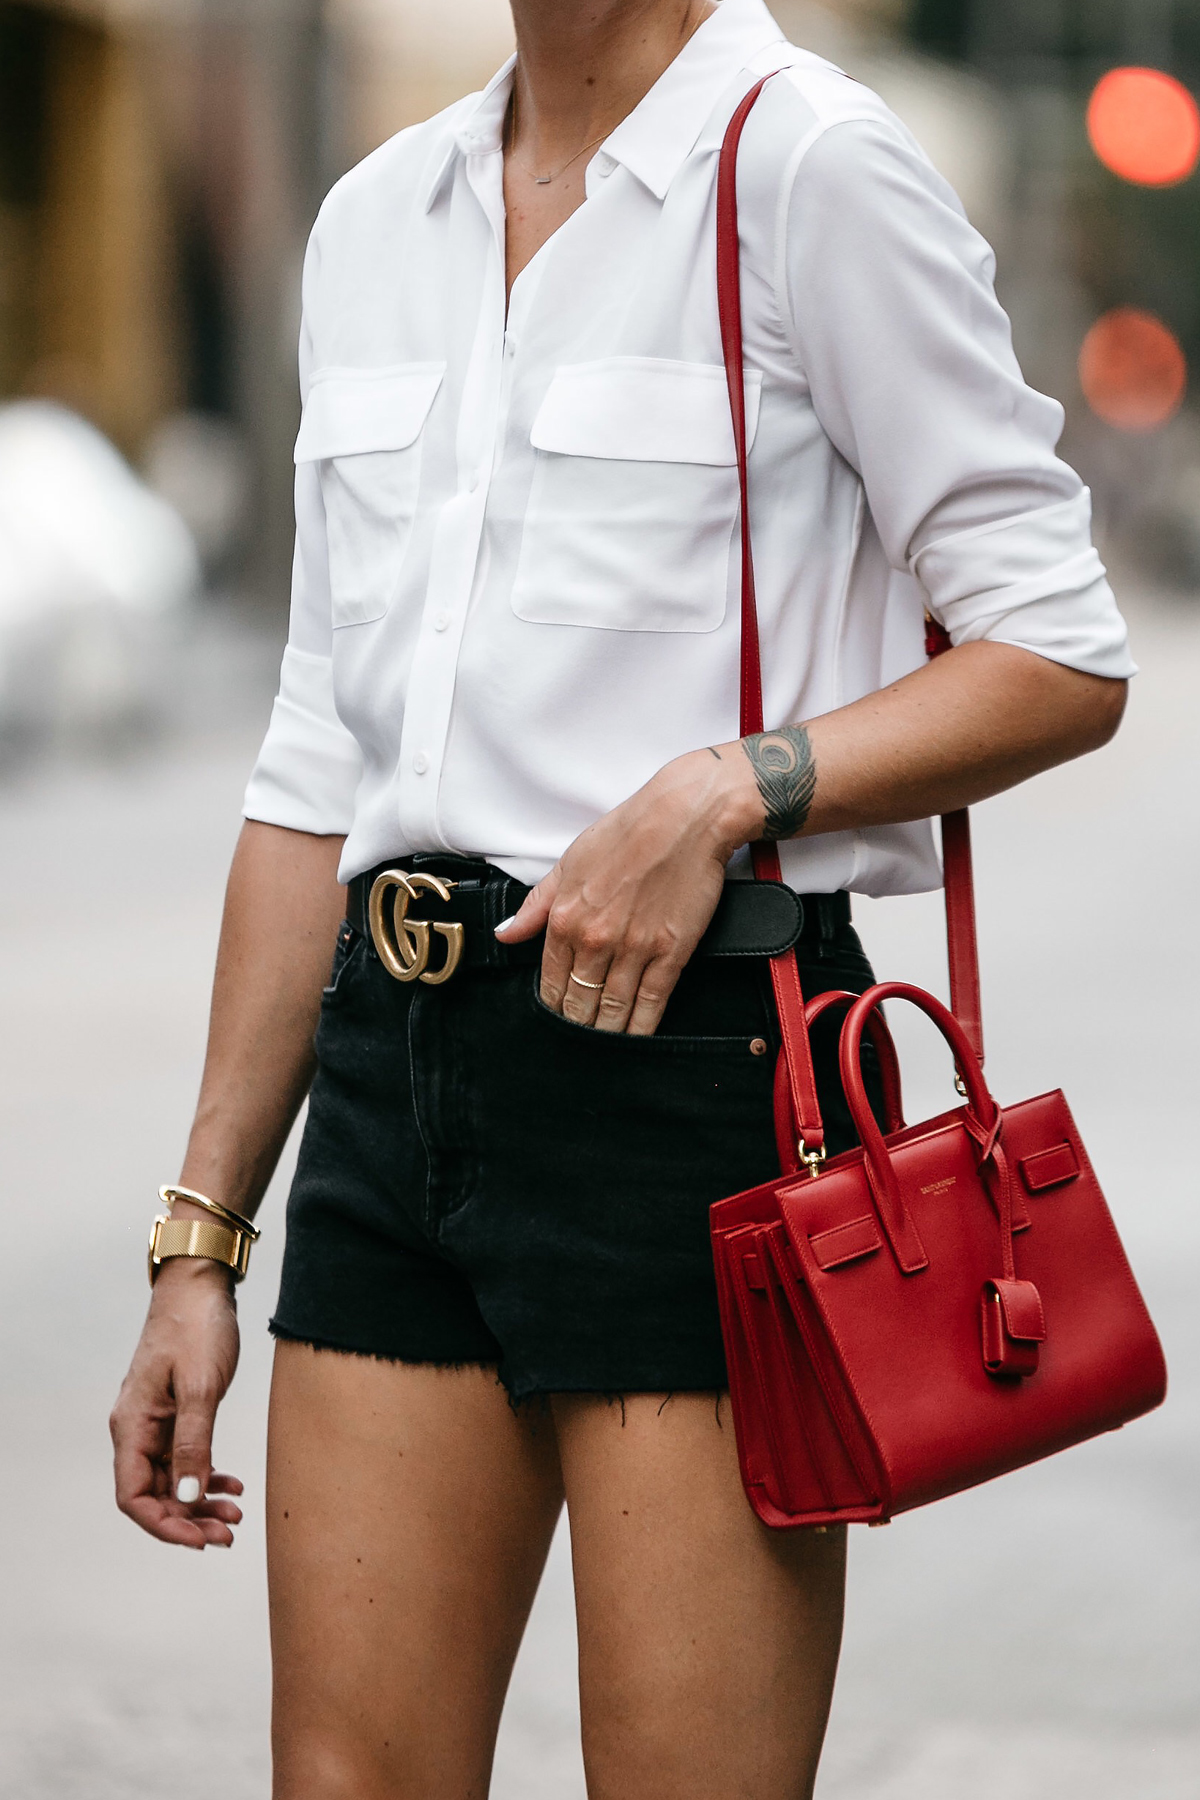 White Button Down Shirt Black Denim Shorts Outfit Saint Laurent Sac De Jour Red Handbag Gucci Marmont Belt Fashion Jackson Dallas Blogger Fashion Blogger Street Style